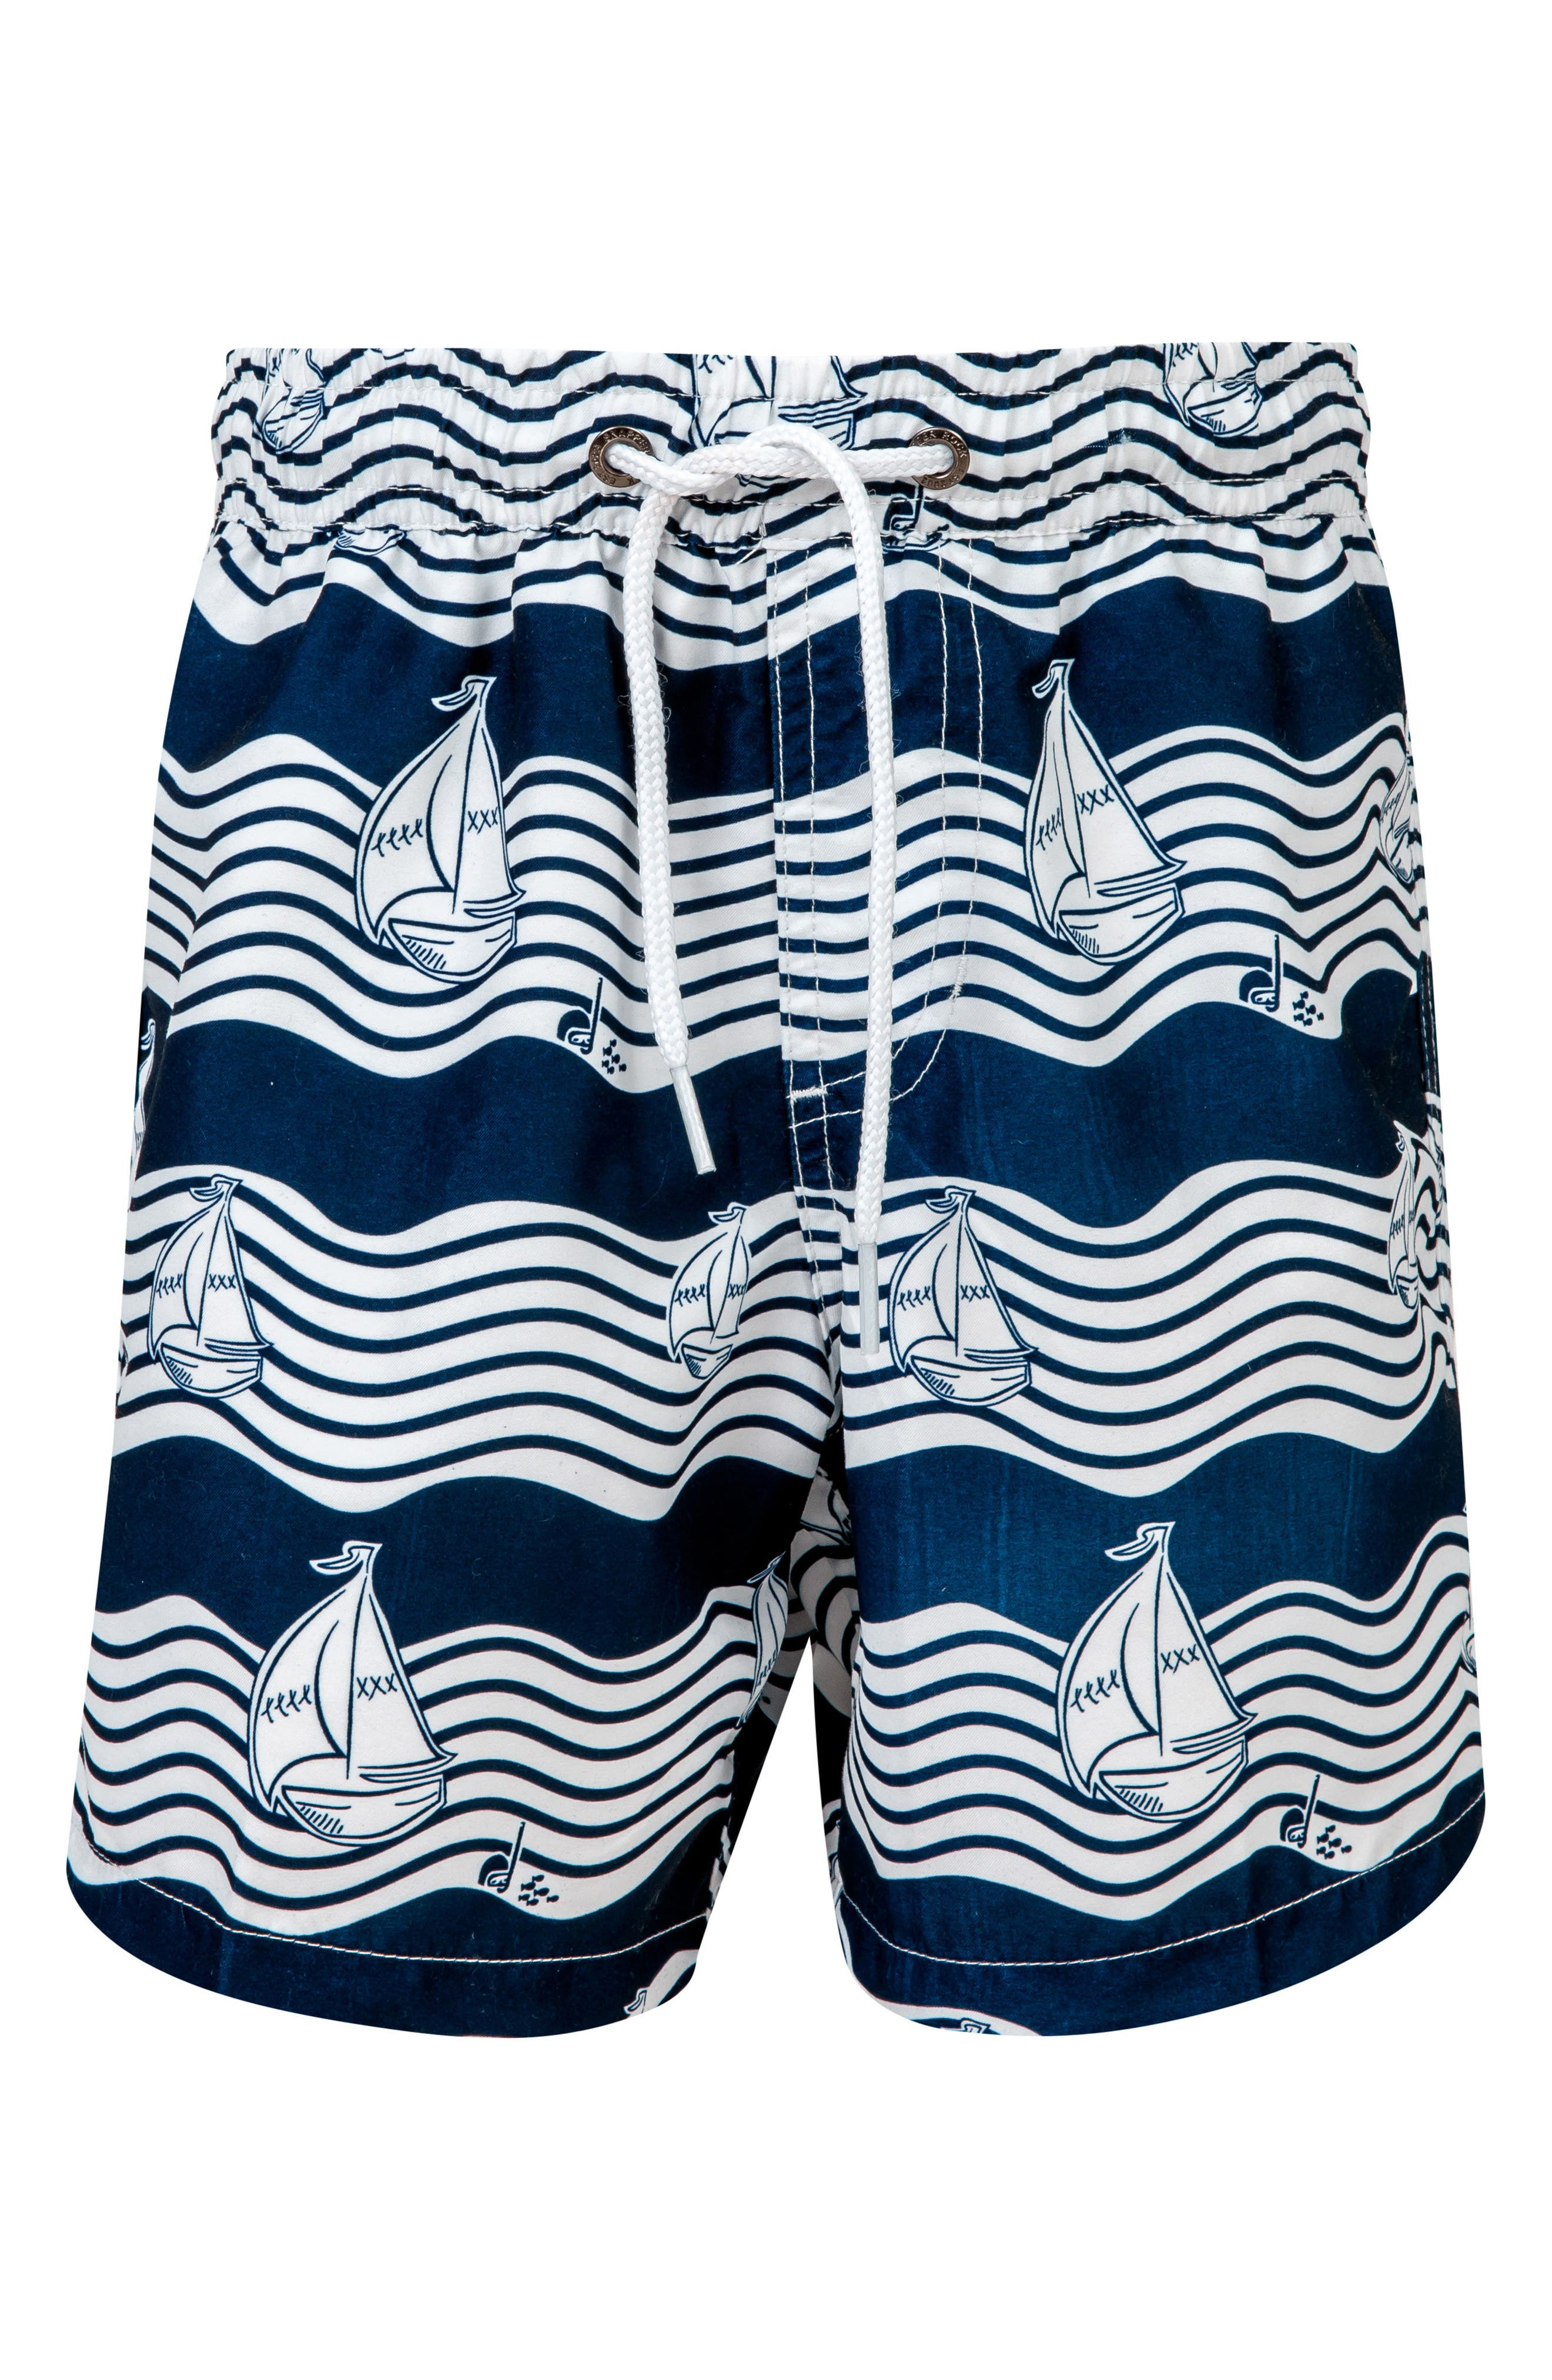 Ocean Explorer Board Shorts,                             Main thumbnail 1, color,